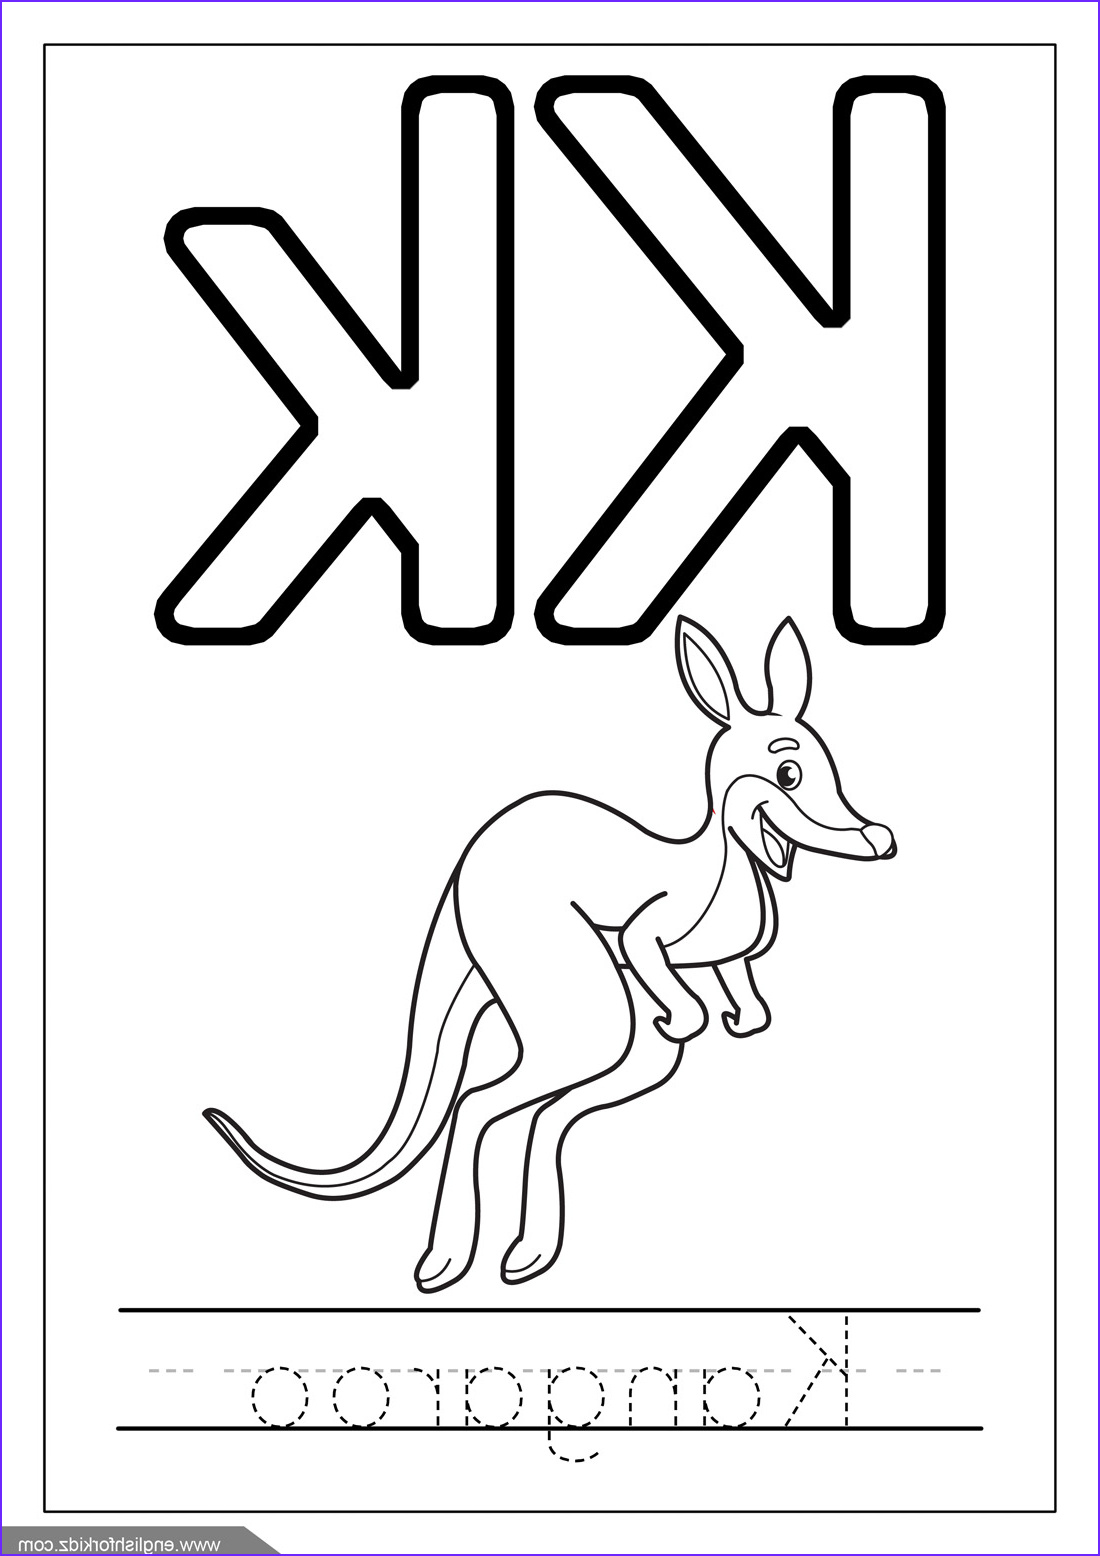 Letter K Coloring Sheet Beautiful Image English for Kids Step by Step